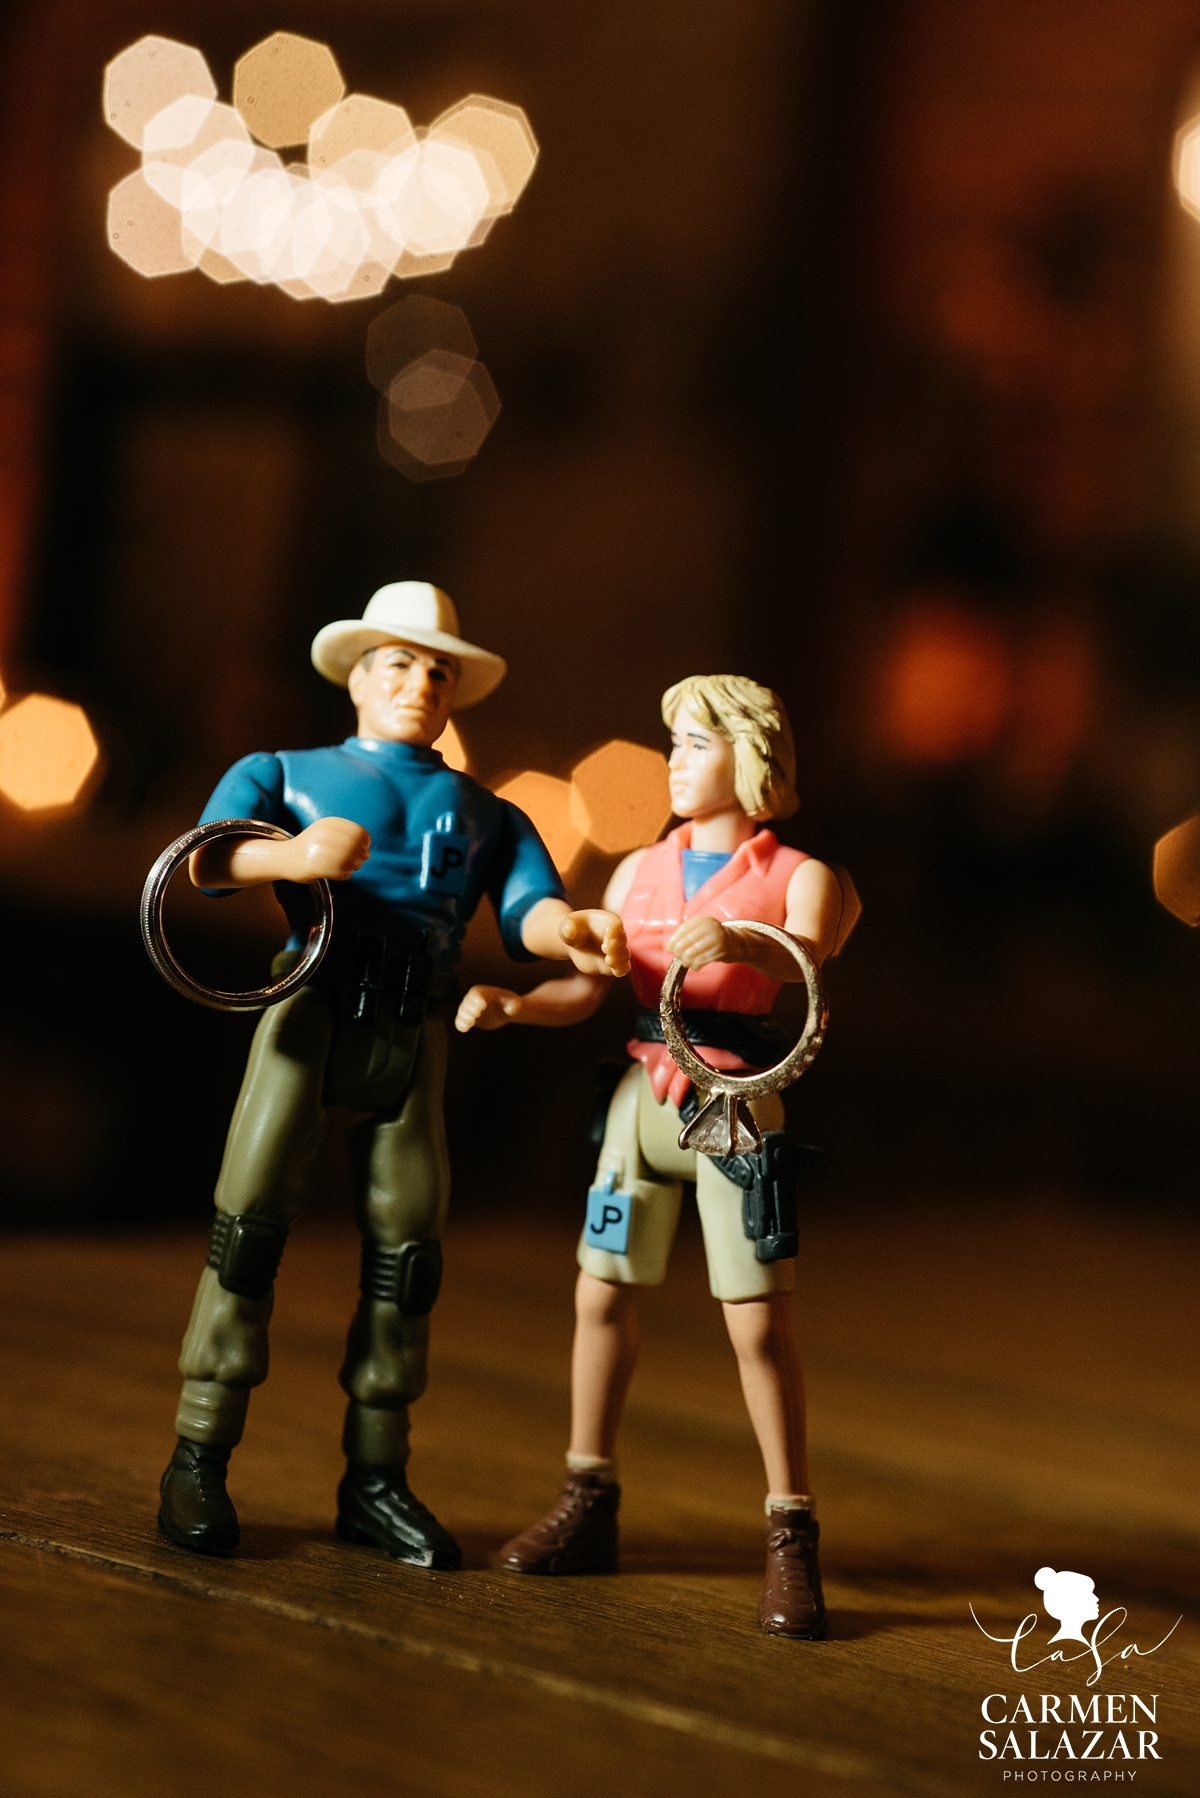 creative wedding ring photo with action figures by Sacramento Wedding Photographer Carmen Salazar